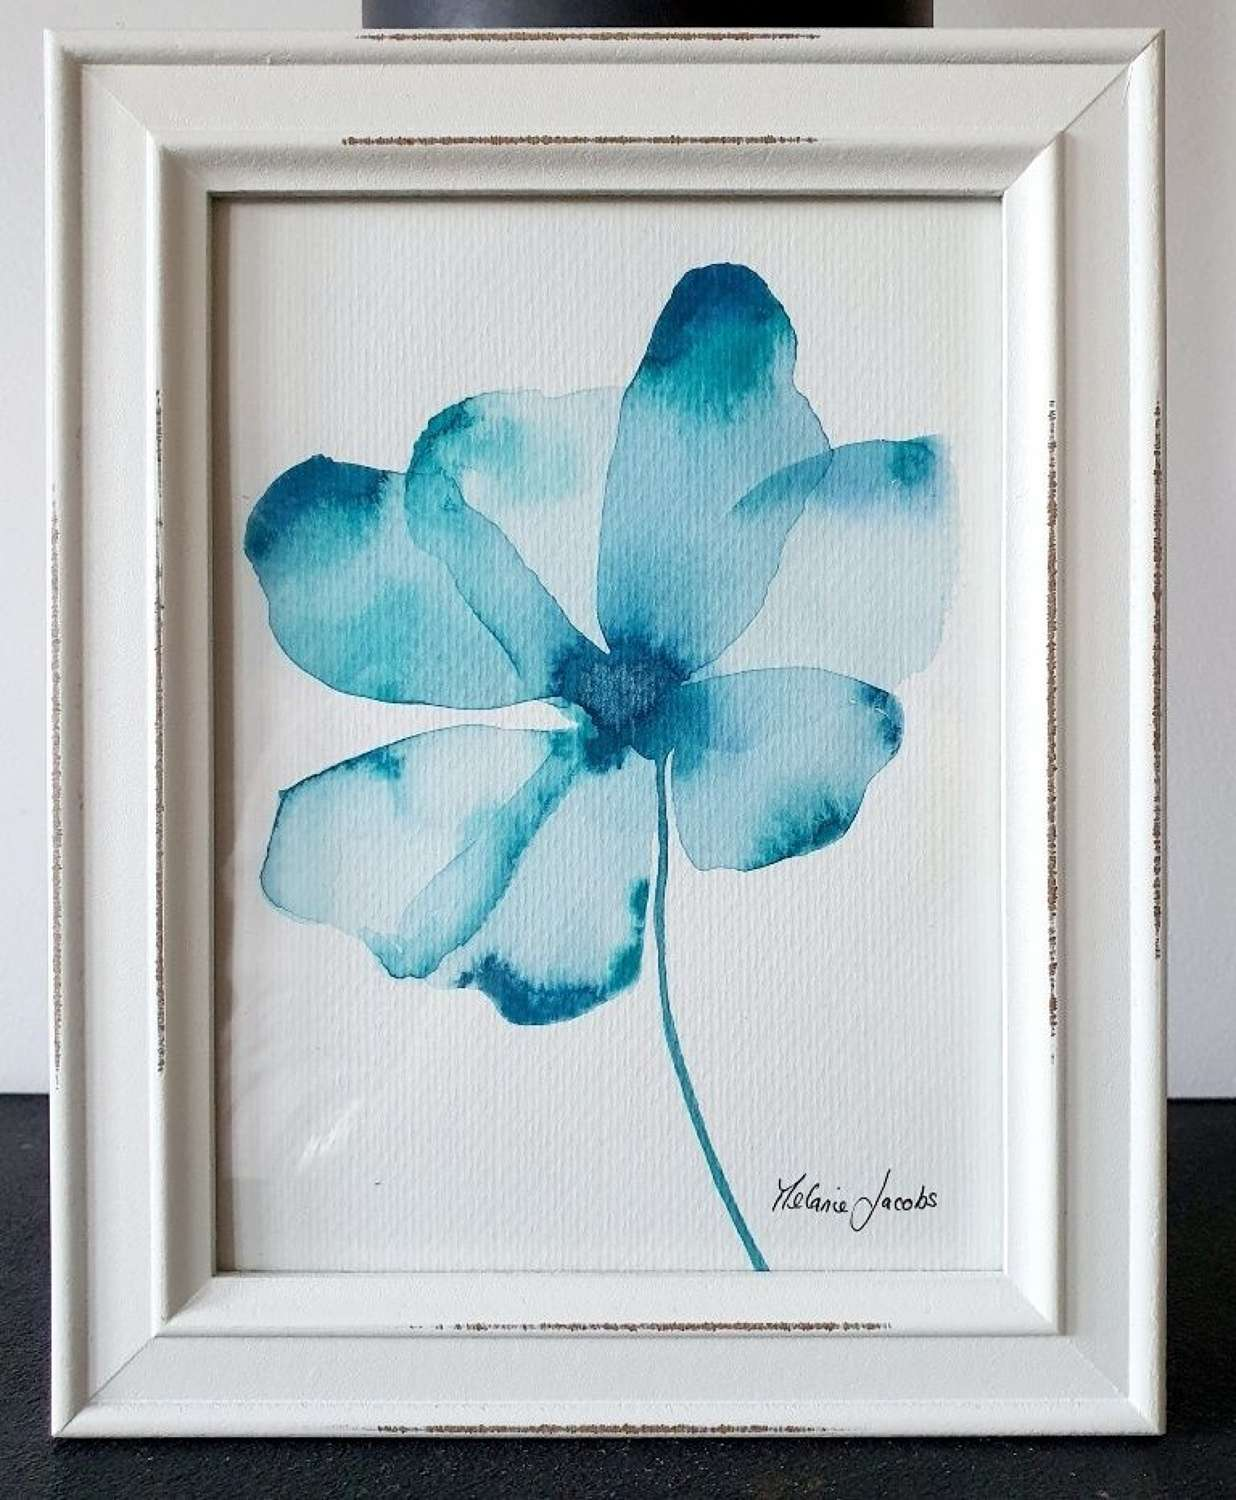 Adorable I - Original Watercolour Painting by Melanie Jacobs